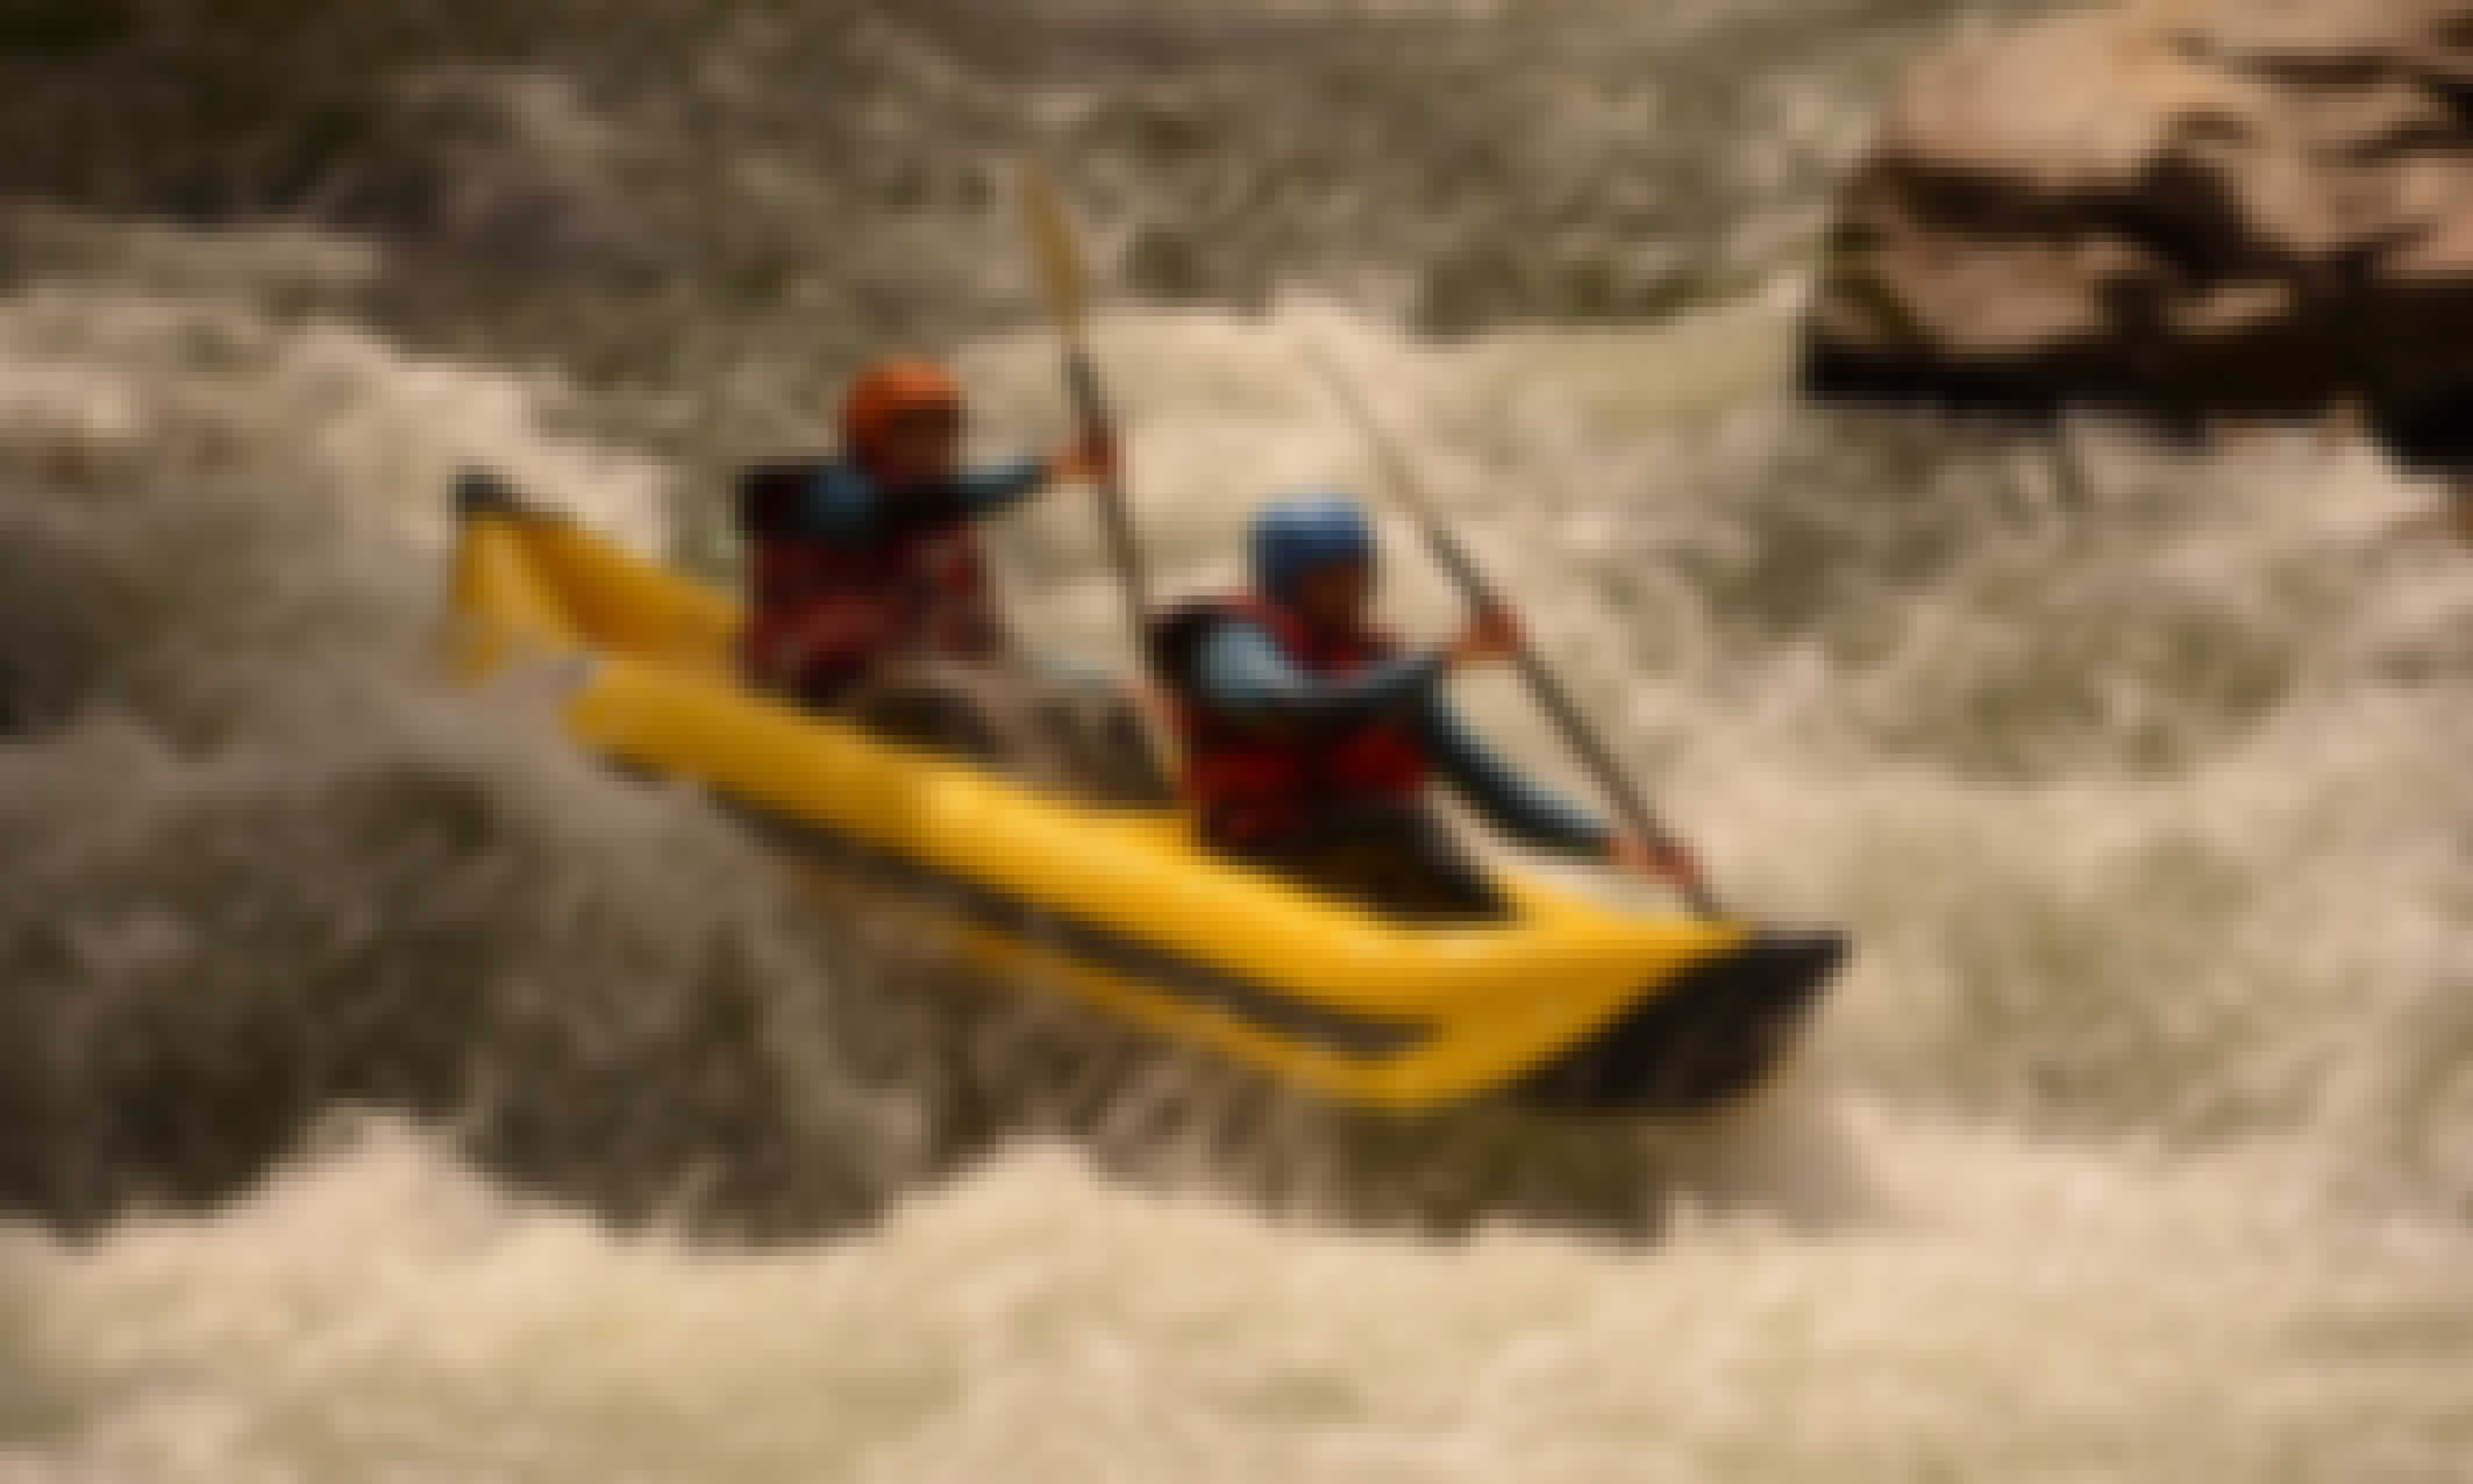 Inflatable Kayak Trips & Courses in the Aude River Gorges